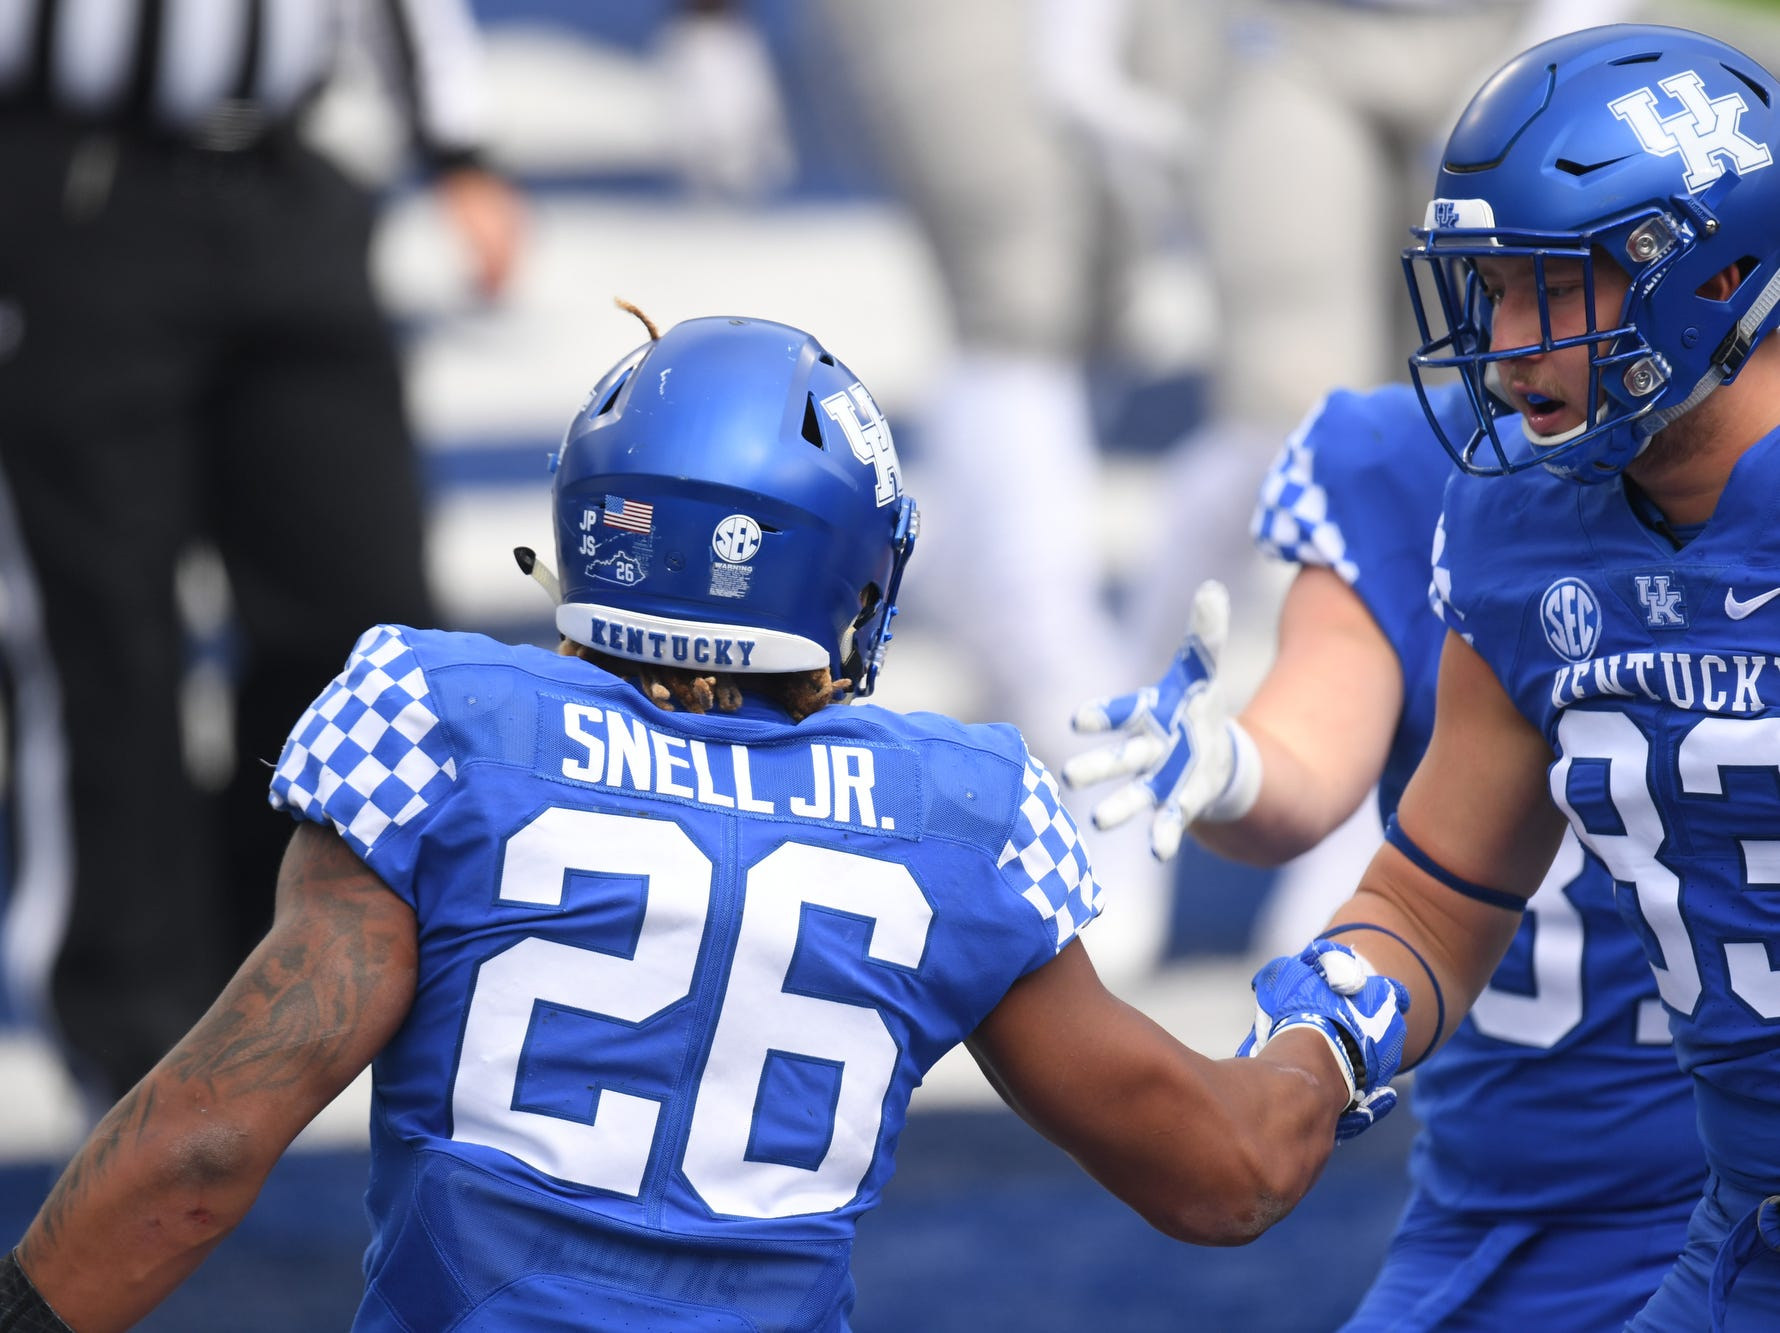 UK RB Benny Snell Jr. celebrates a touchdown with teammates during the University of Kentucky football game against Middle Tennessee at Kroger Field in Lexington, Kentucky on Saturday, November 17, 2018.